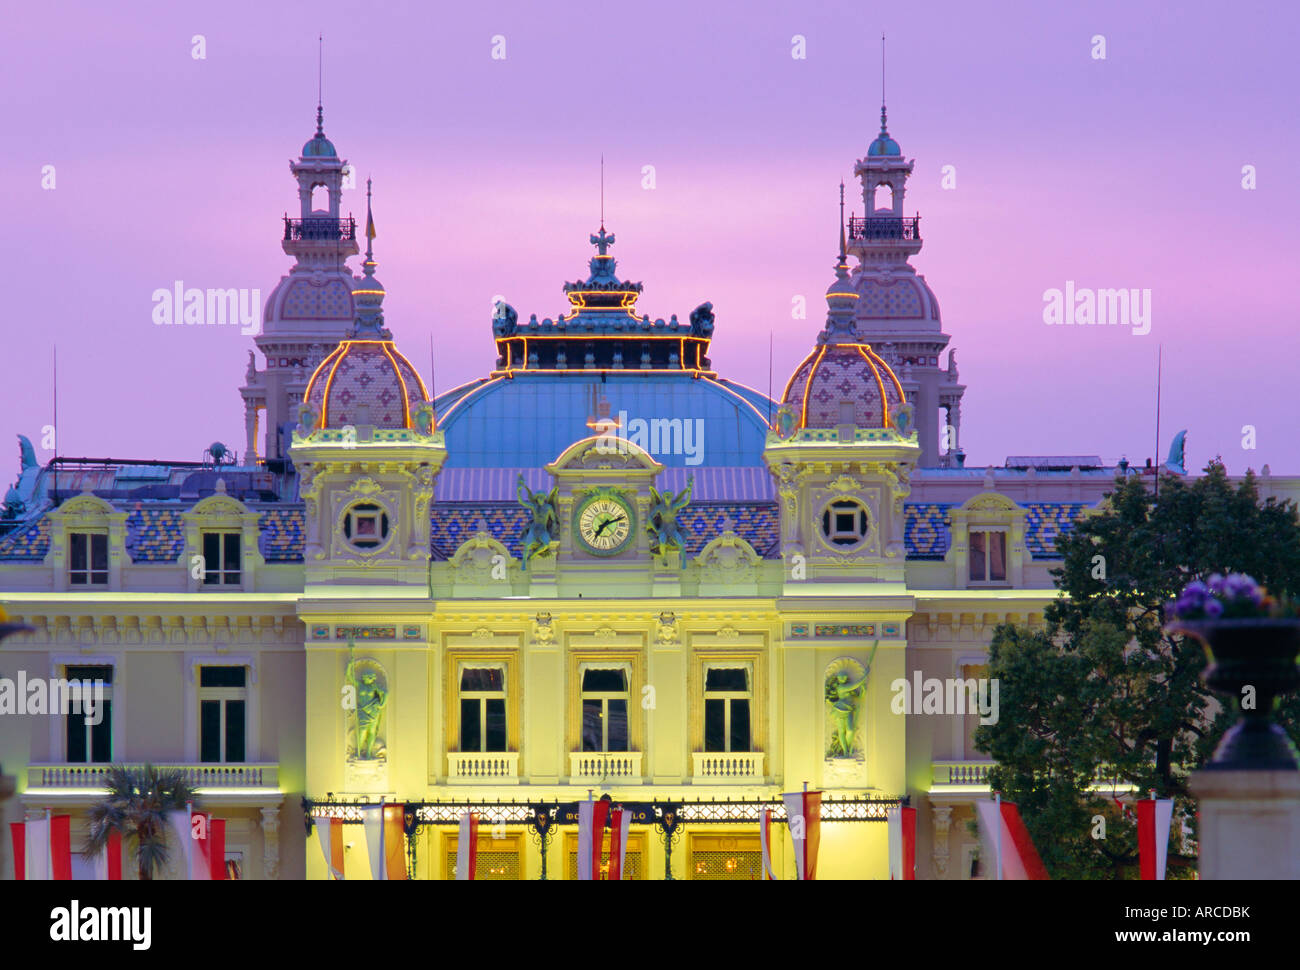 The Casino, west front, Monte Carlo, Monaco, Europe - Stock Image